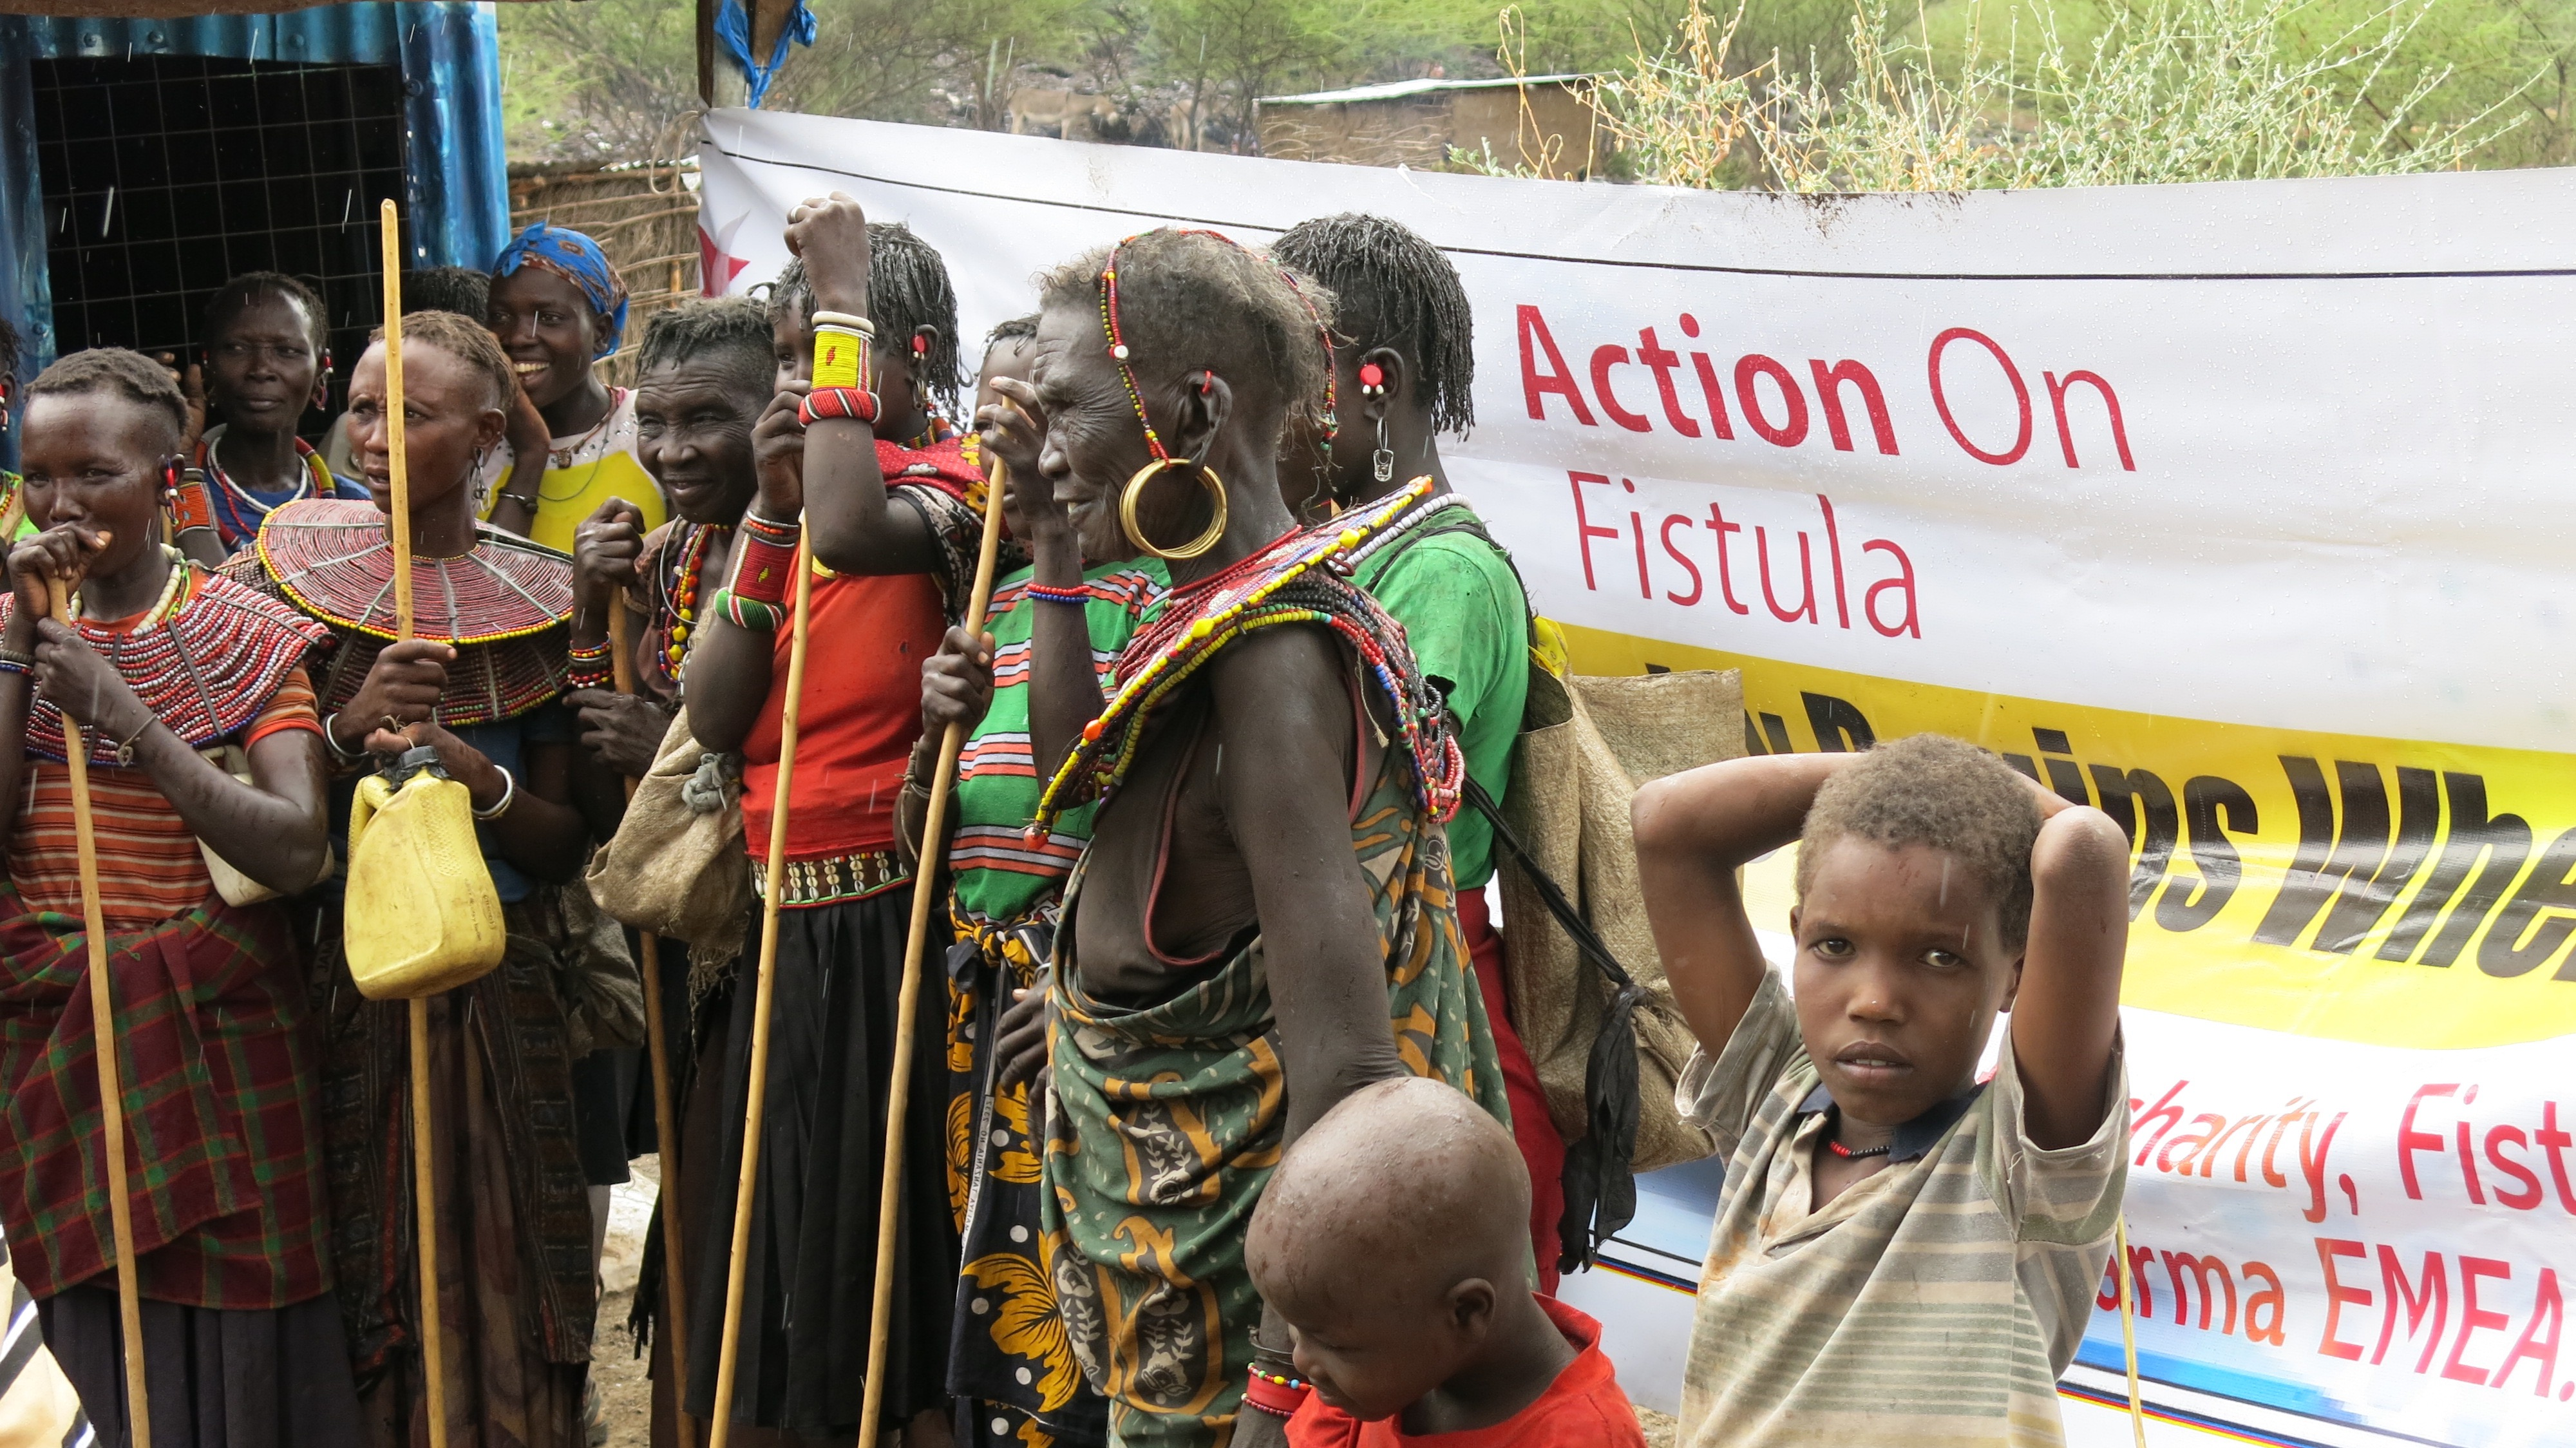 Field Notes: Baringo, Kenya with Action on Fistula (October 2015)